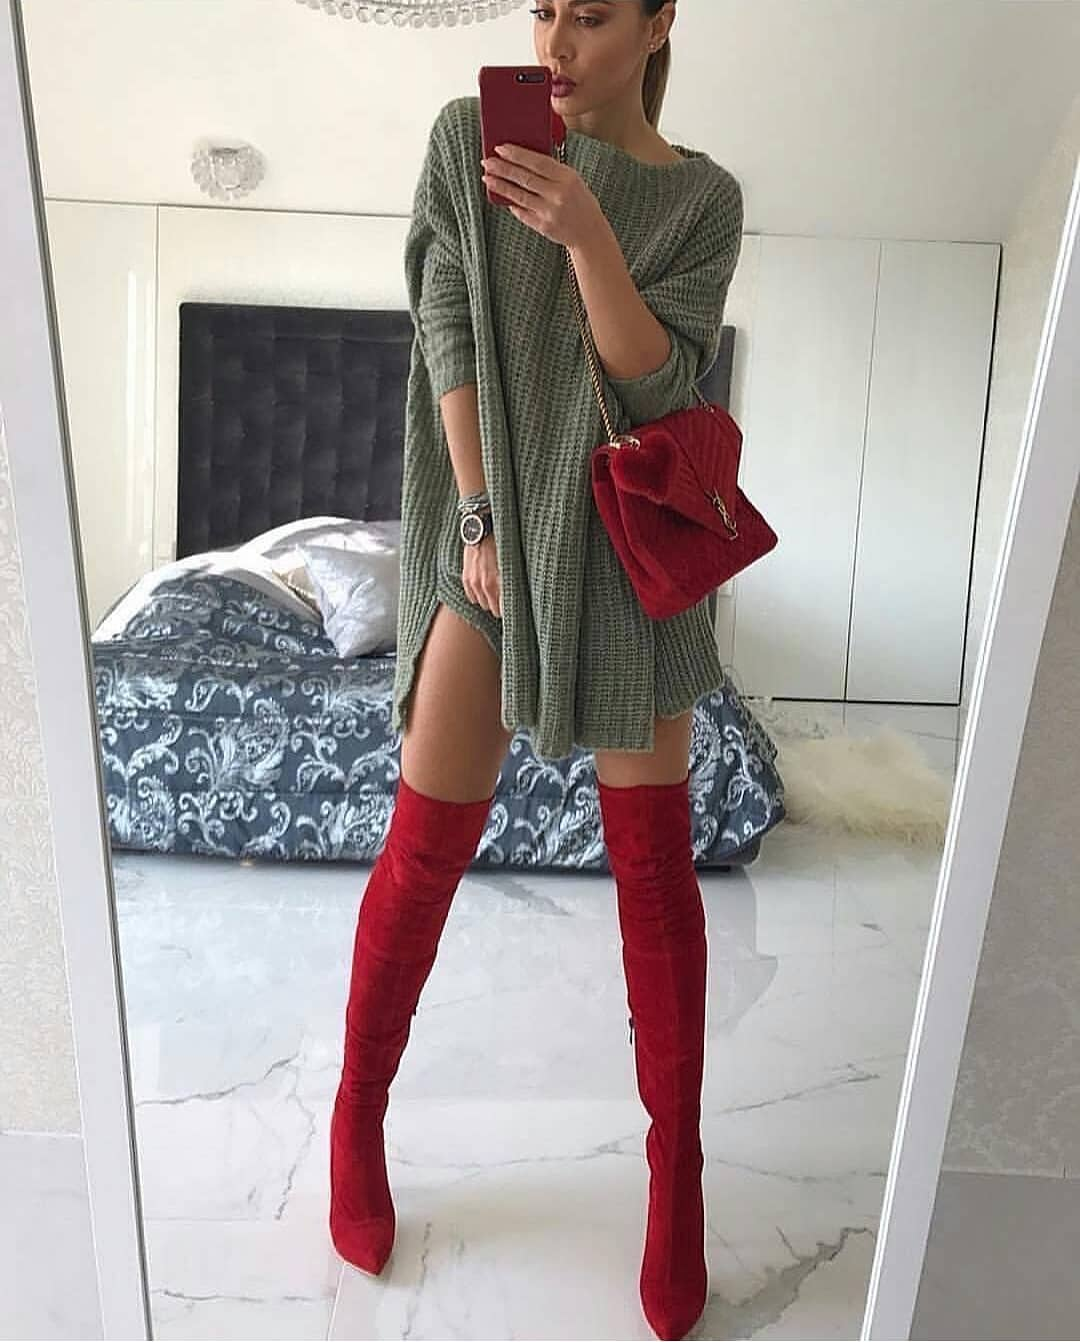 Khaki Green Sweater Dress And Red Suede OTK Boots For Spring 2020